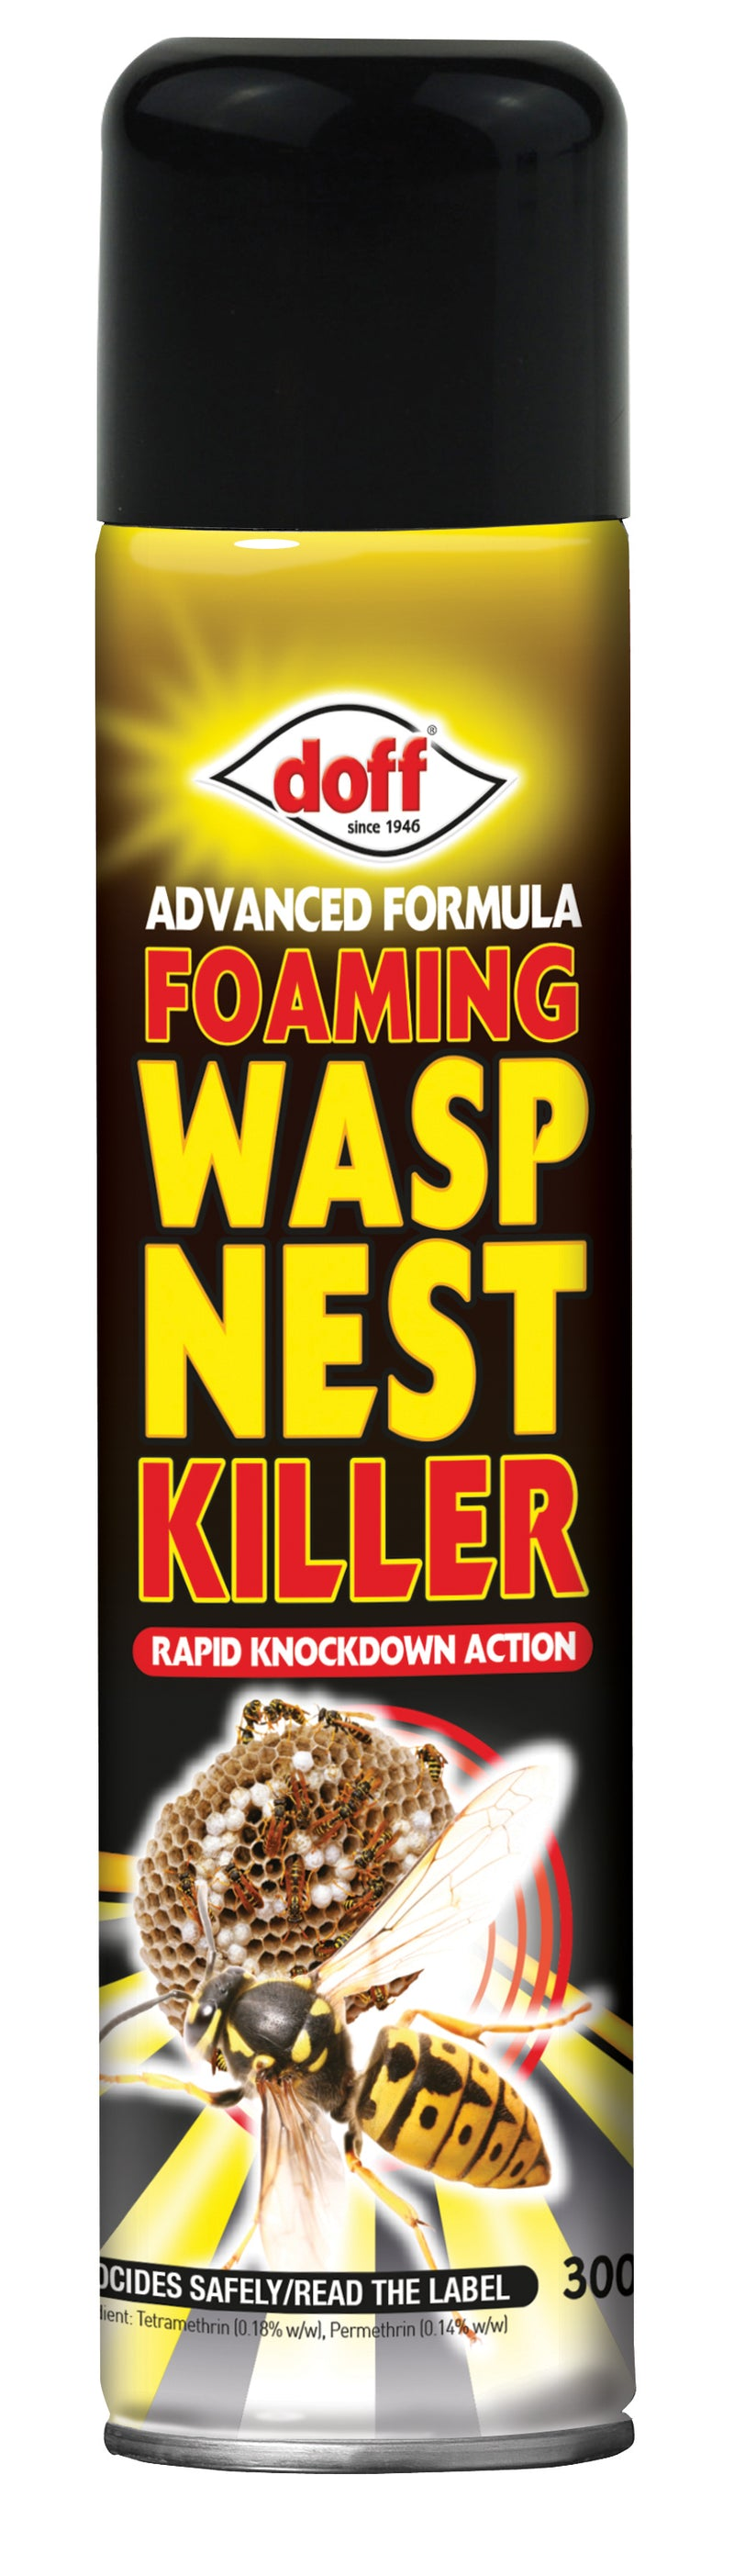 Advanced Formula Foaming Wasp Nest Killer 300ml